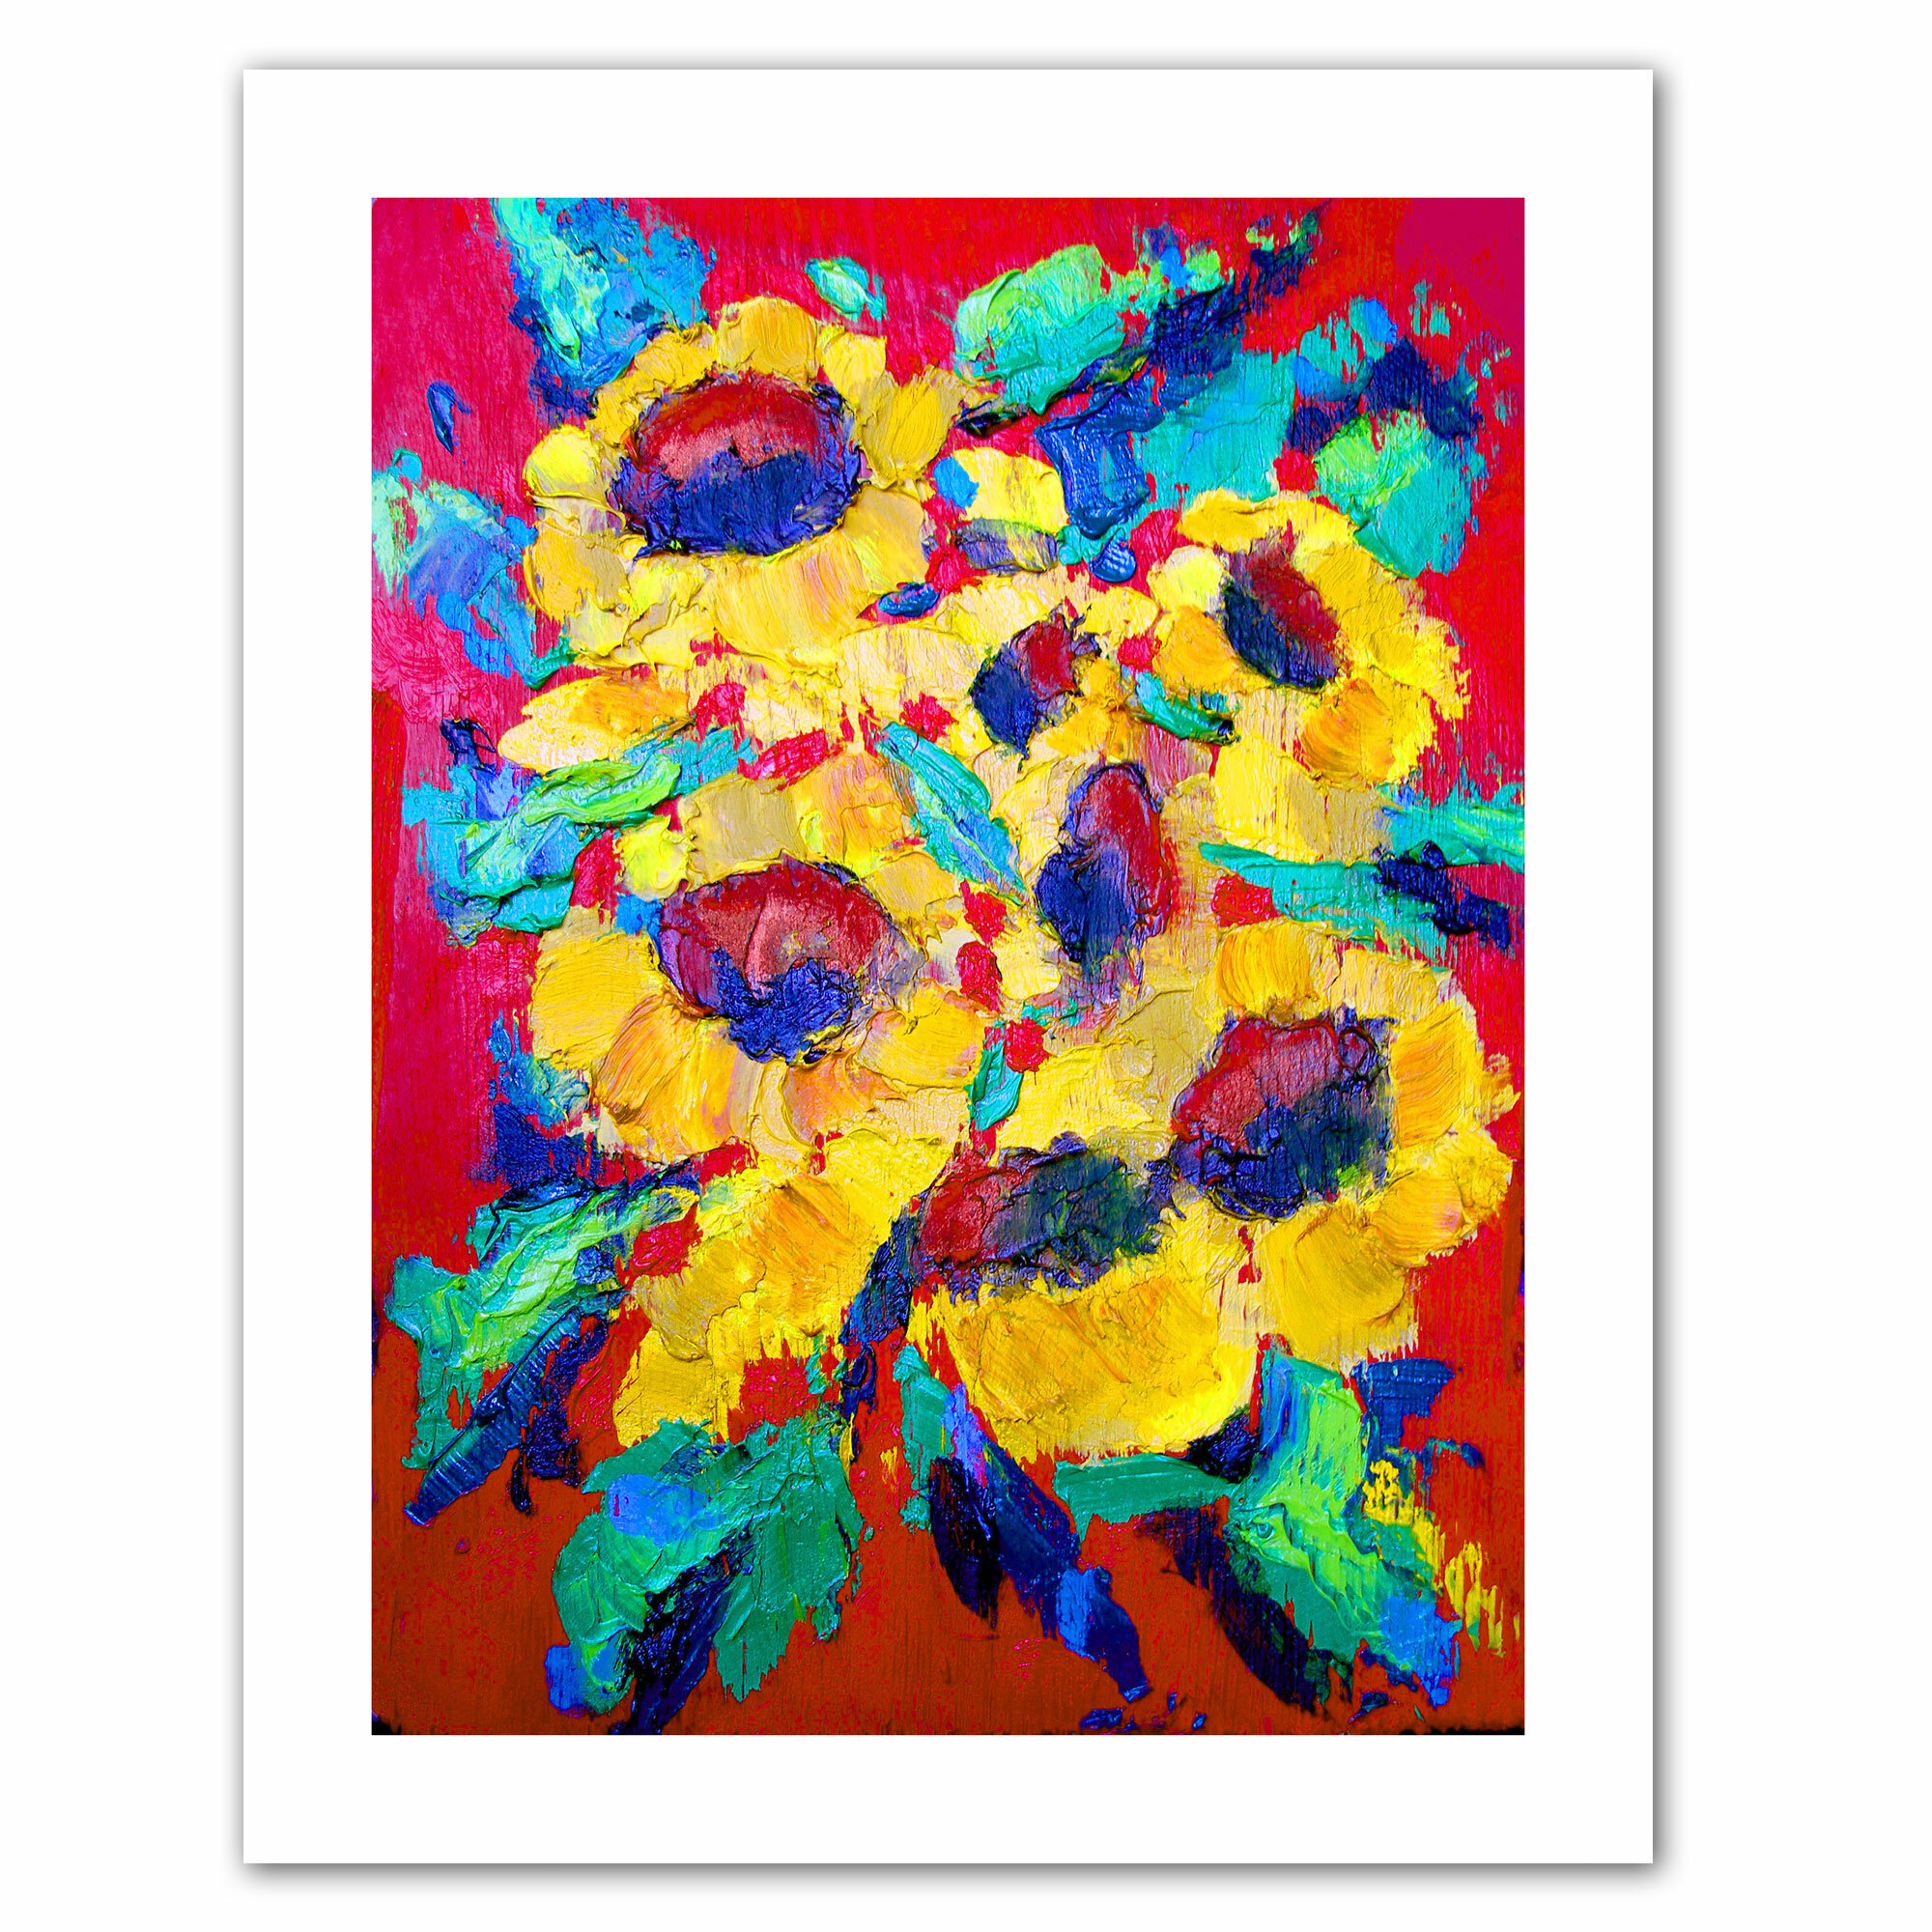 Artwall Sunflower On Shingel Roof By Susi Franco Painting